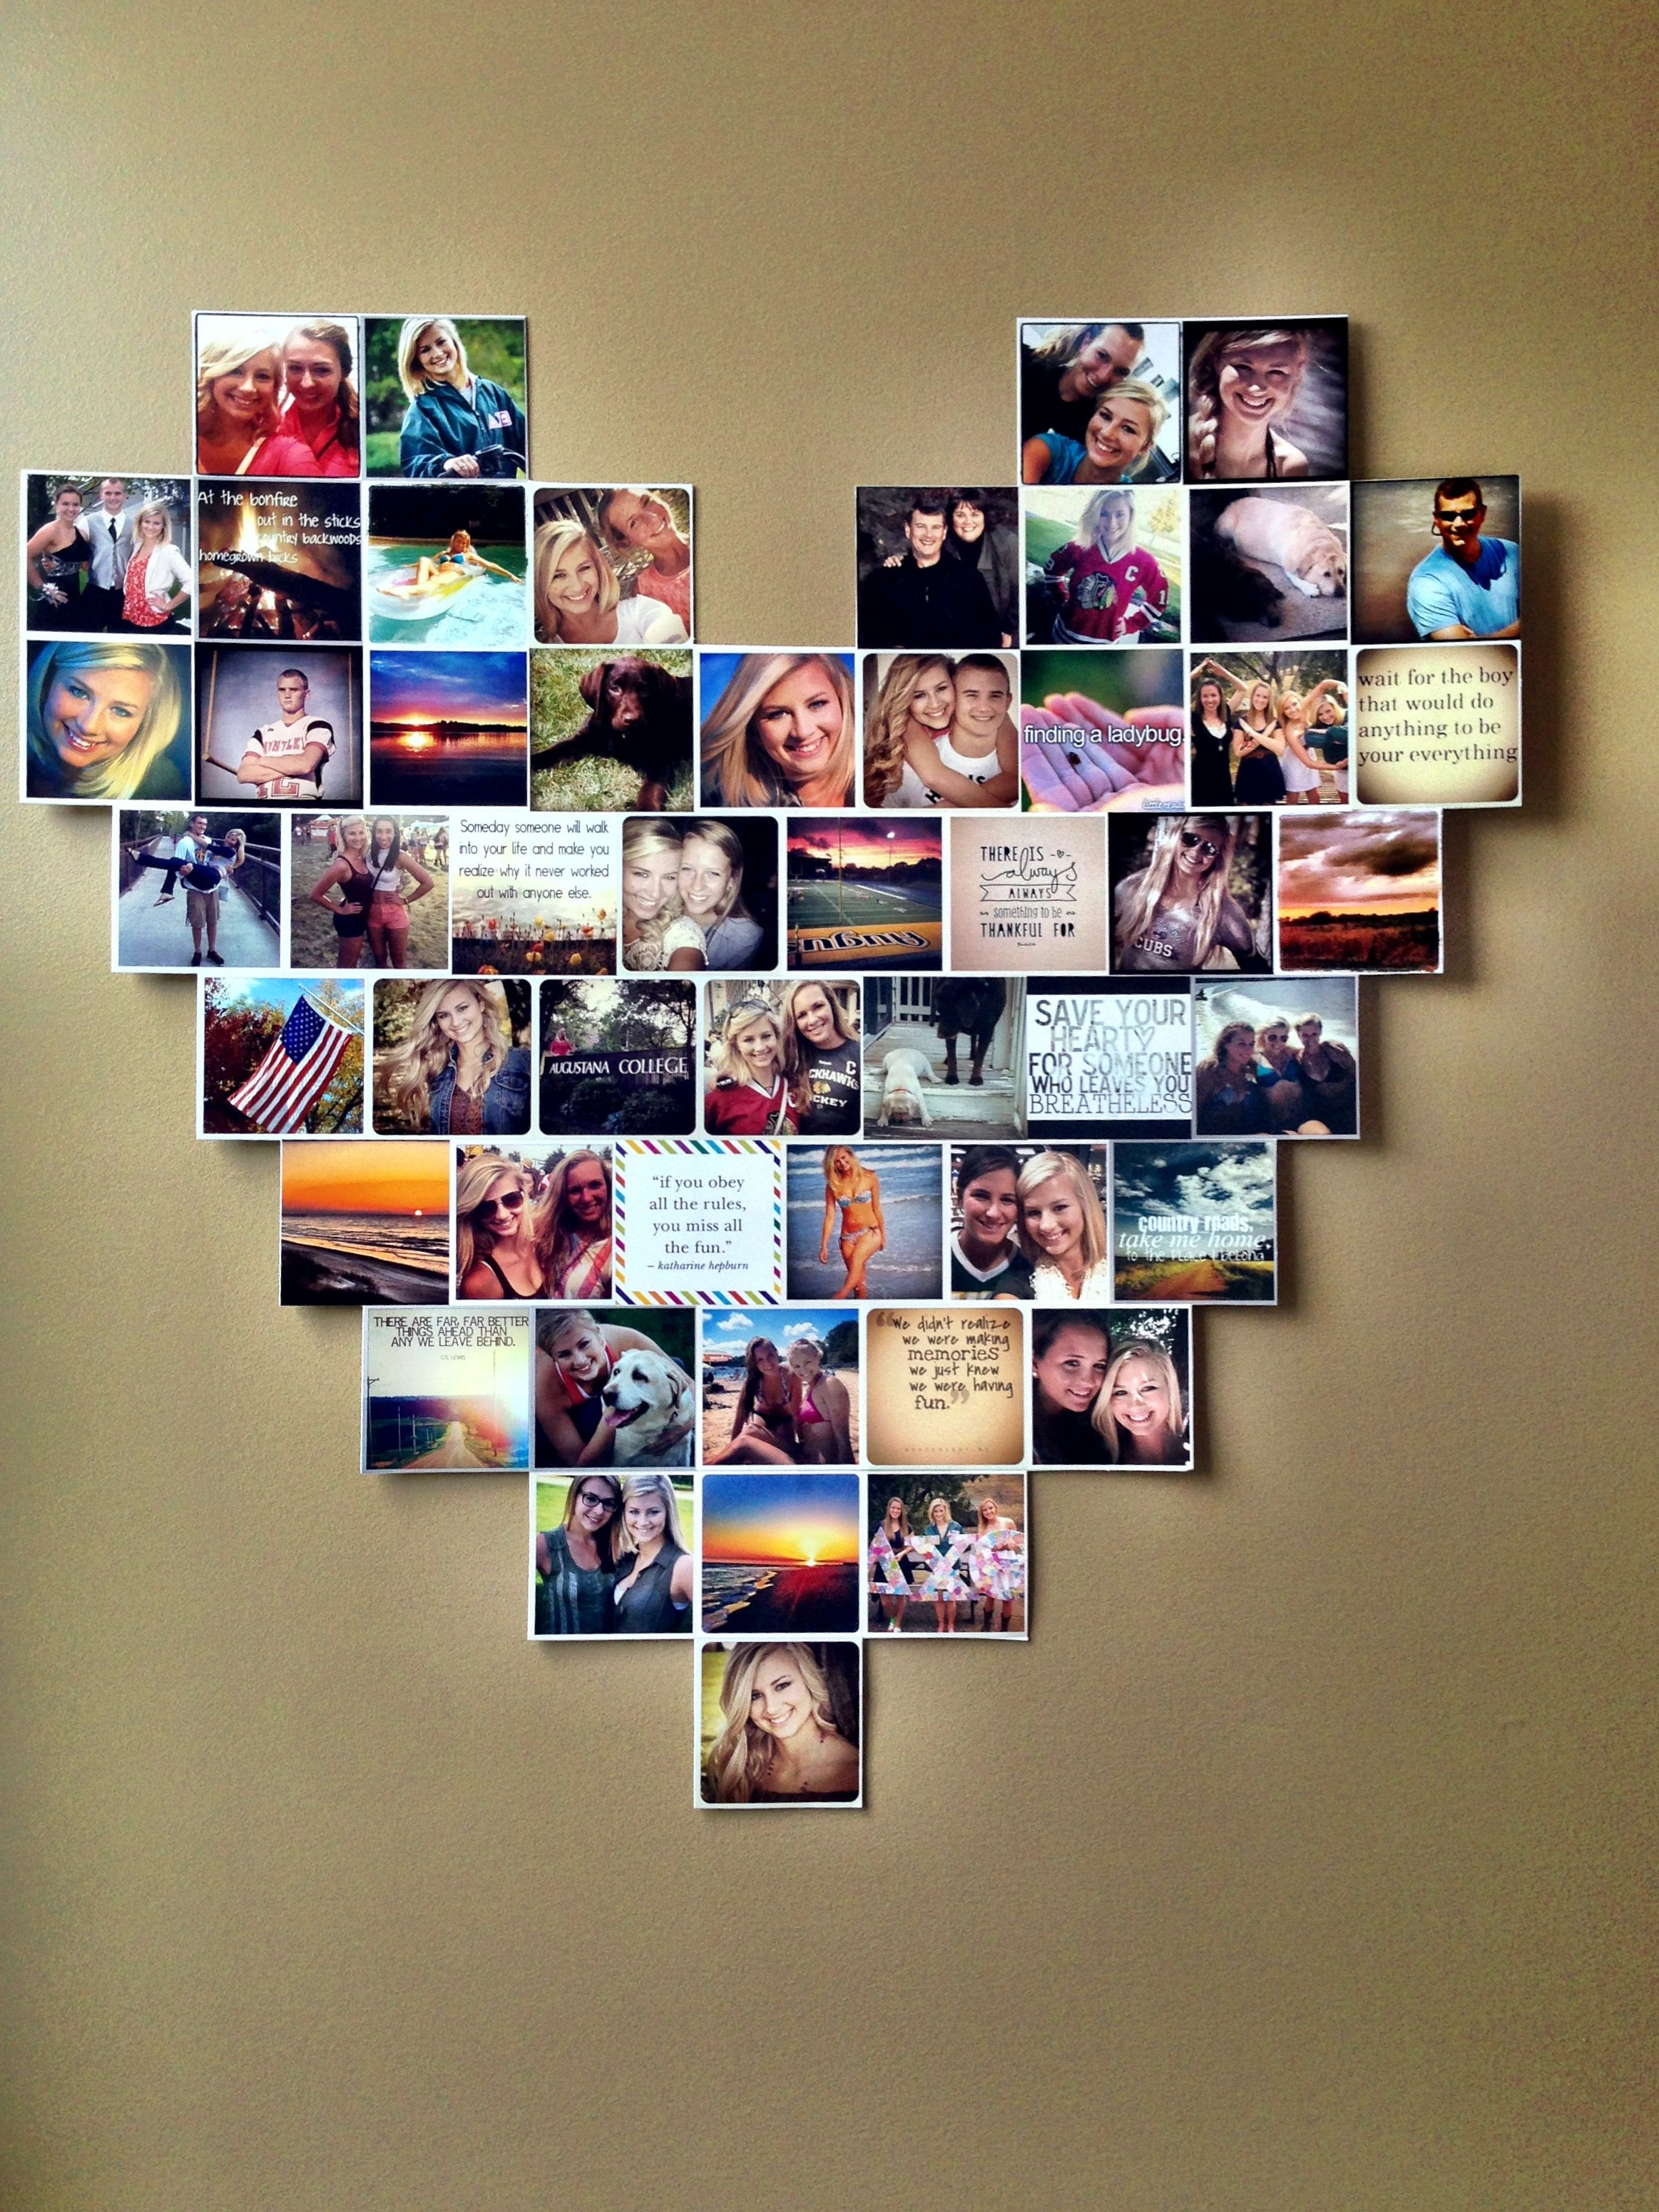 Heart Photo Collage Dorm Room Ideas Instagram Pictures Dorm Room Designs Diy Projects Dorm Room Dorm Decorations